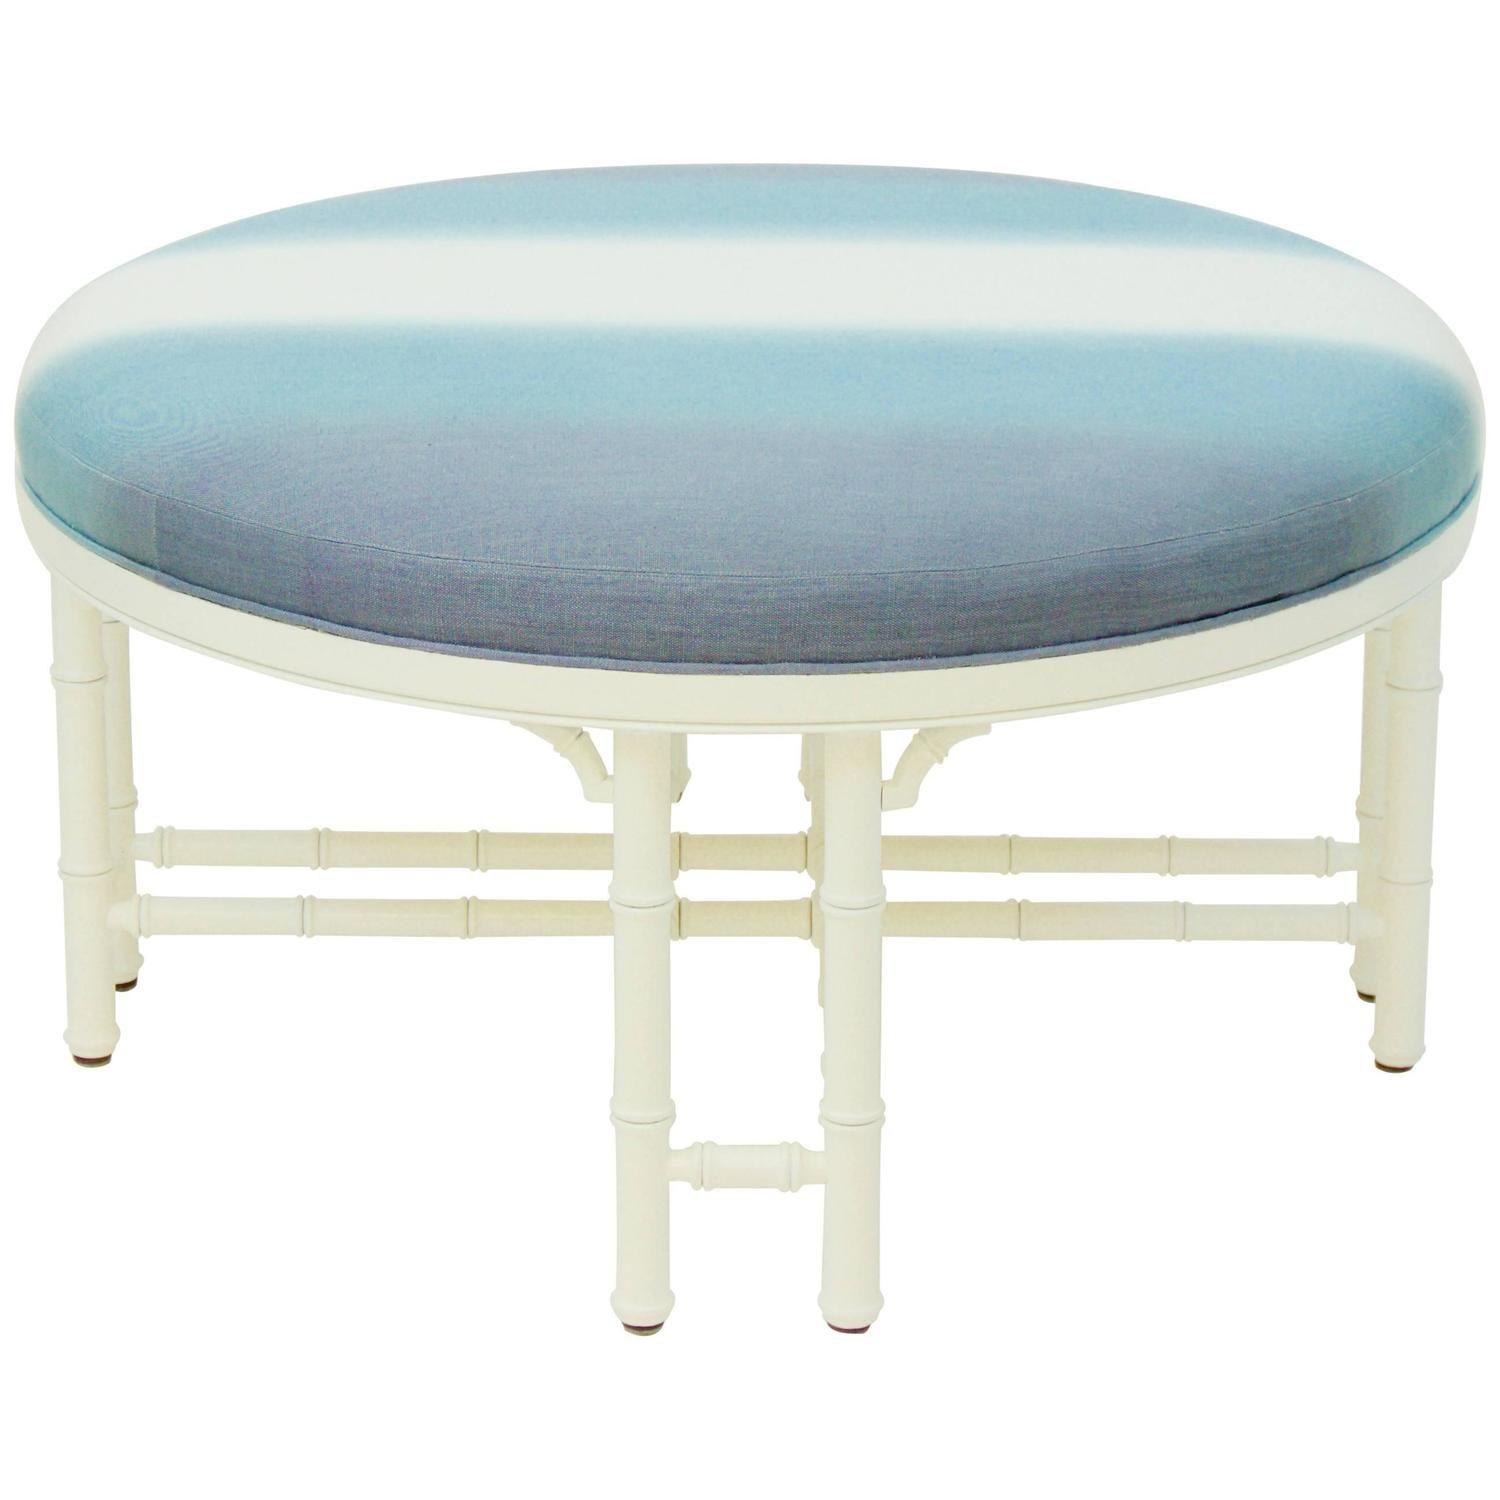 Miraculous Vintage Round Ottoman With Faux Bamboo Detailing My Caraccident5 Cool Chair Designs And Ideas Caraccident5Info